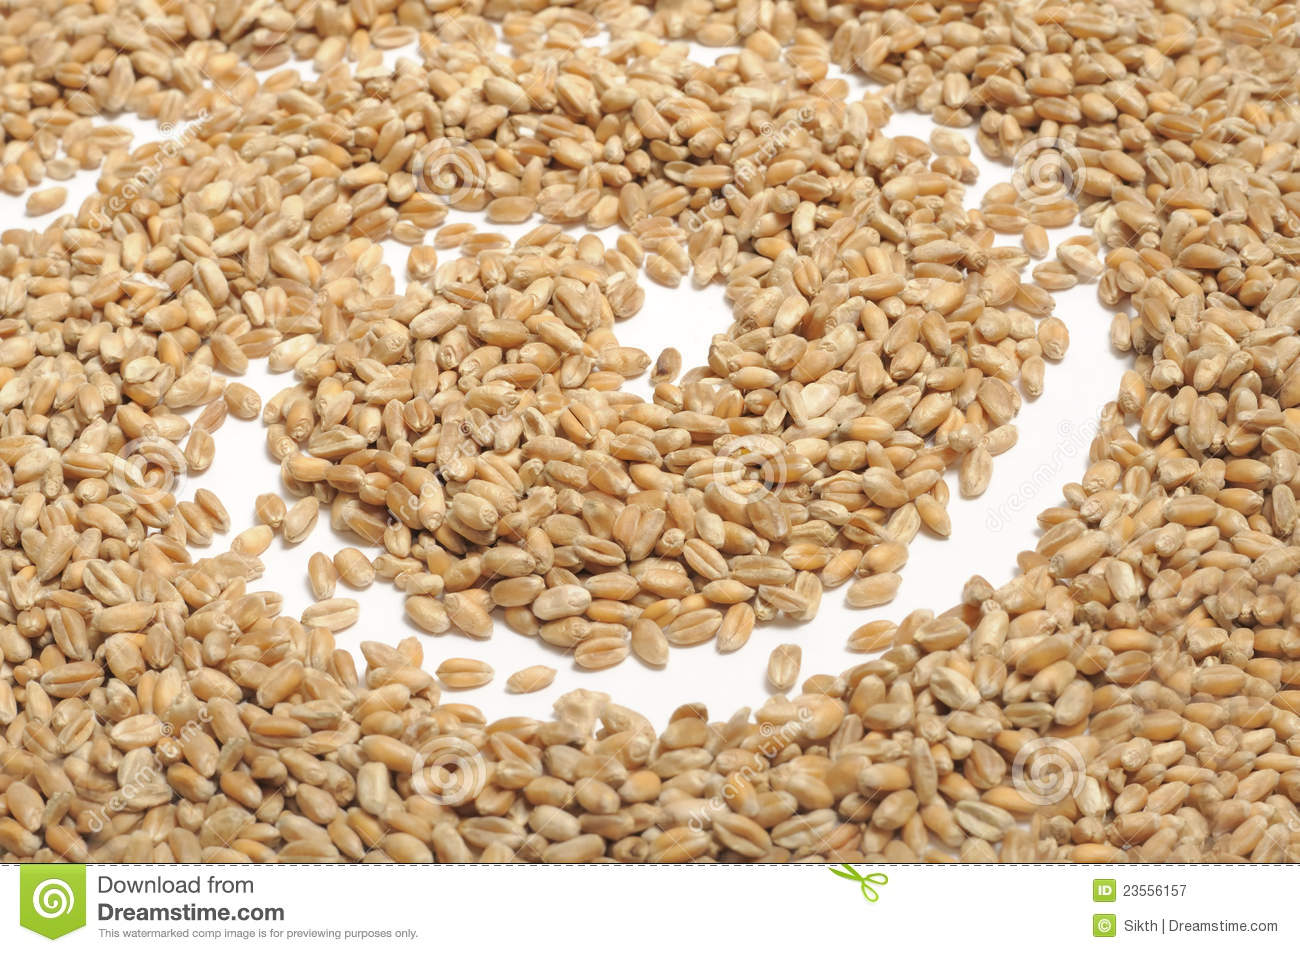 Wheat Grains with Spiral